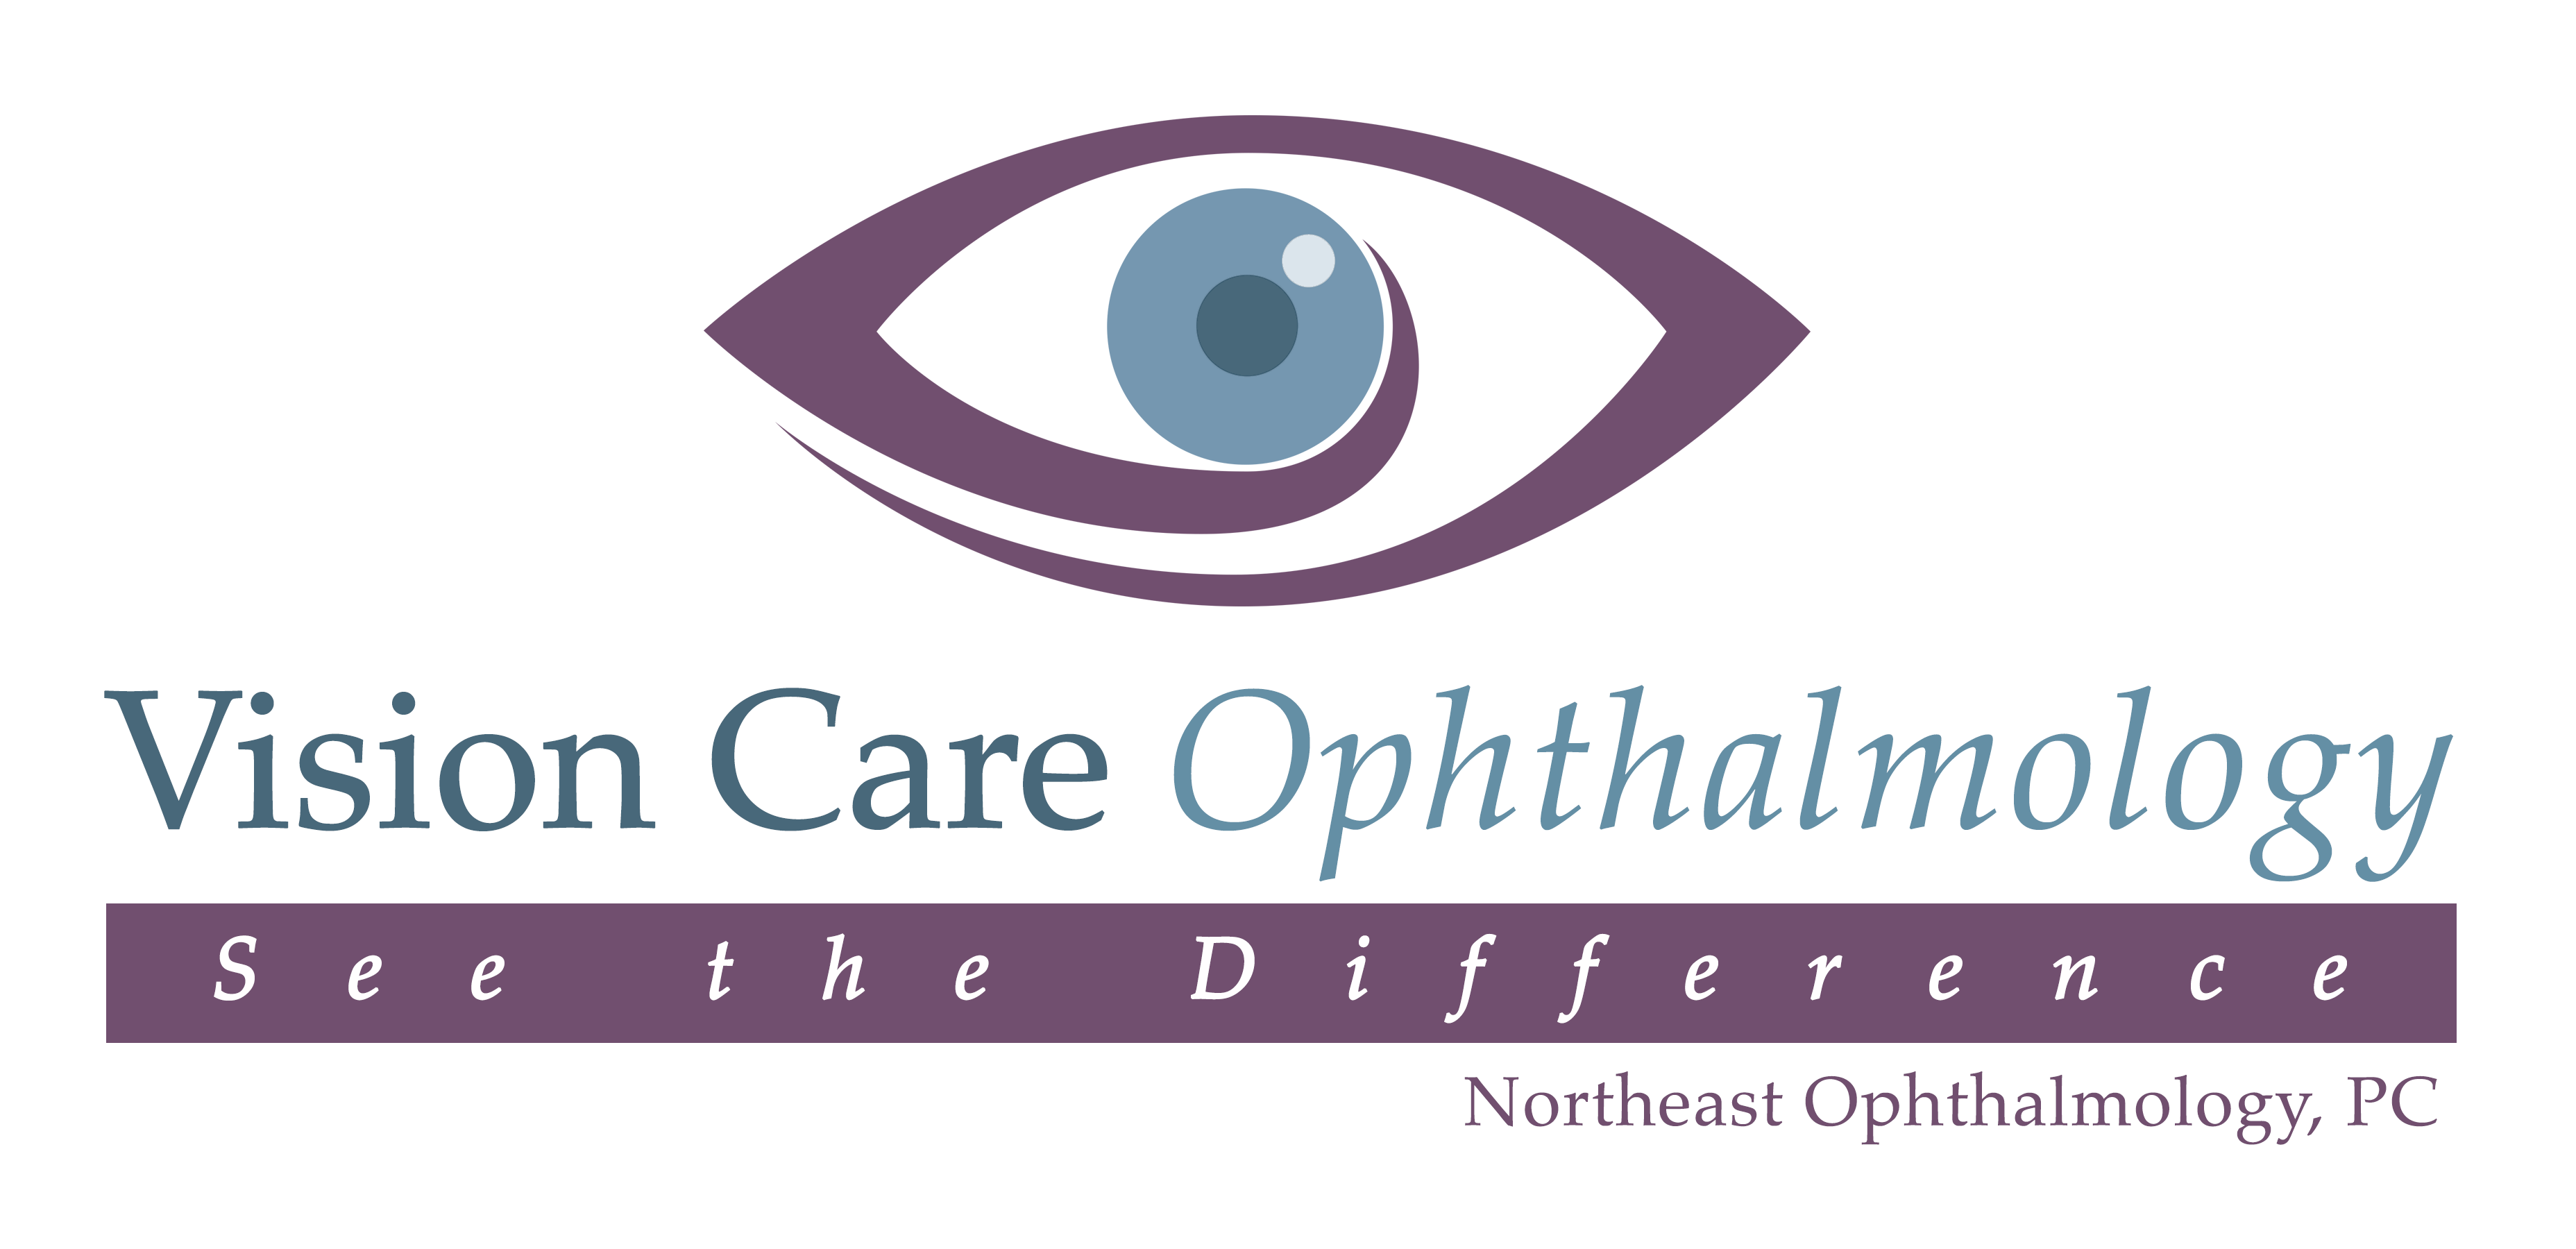 Vision Care Ophthalmology